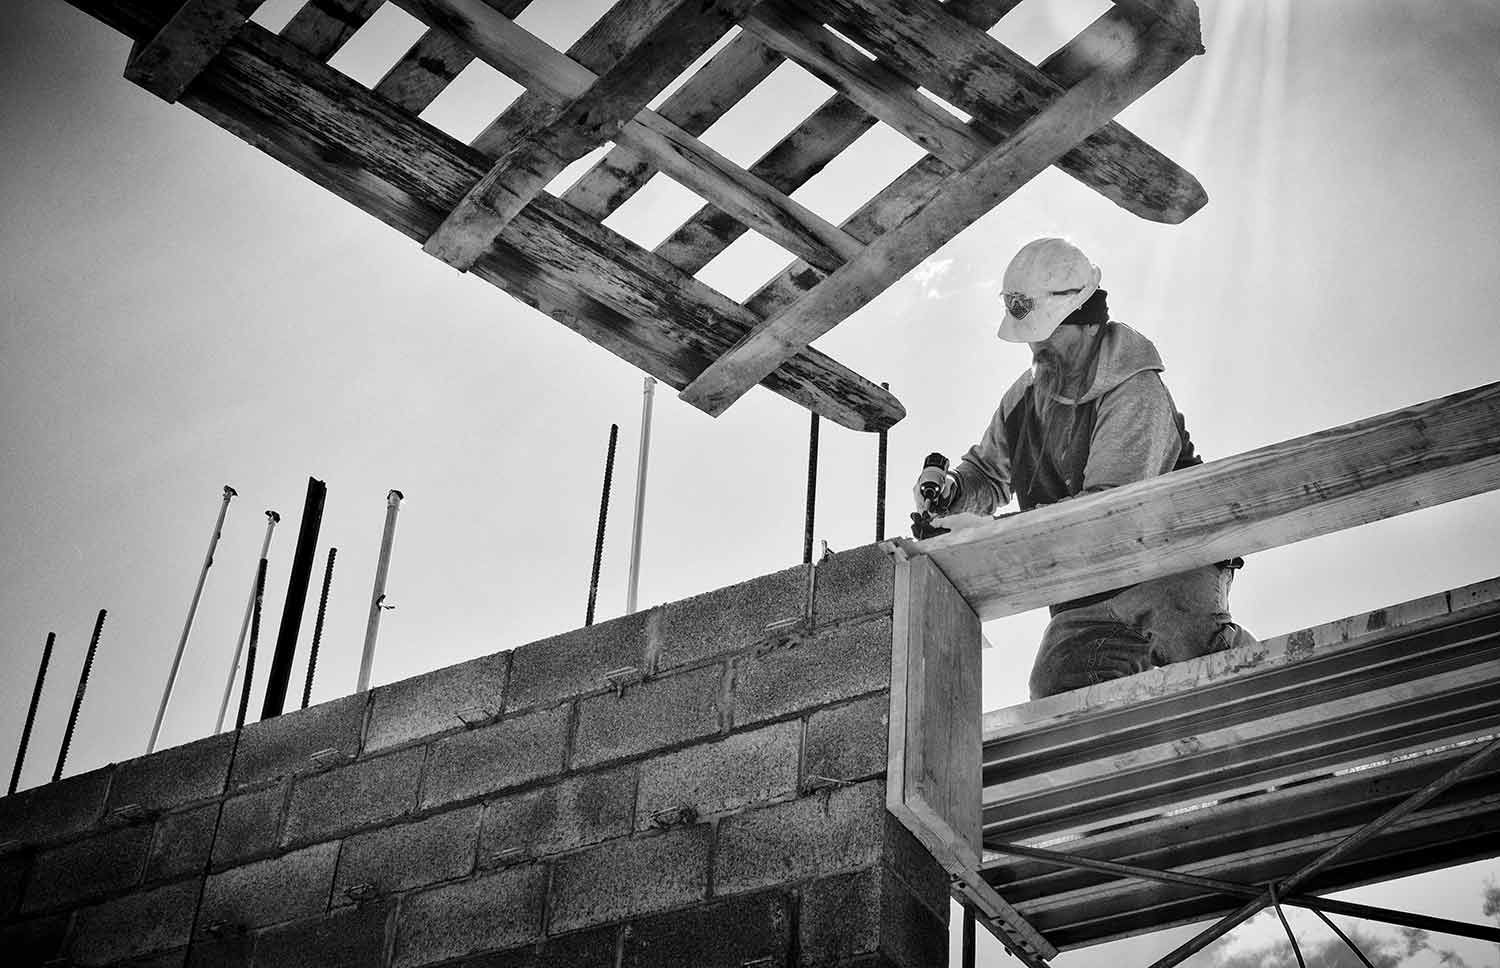 David Mould drills a board into place at a construction site. photo by Jared Sebby - 2016